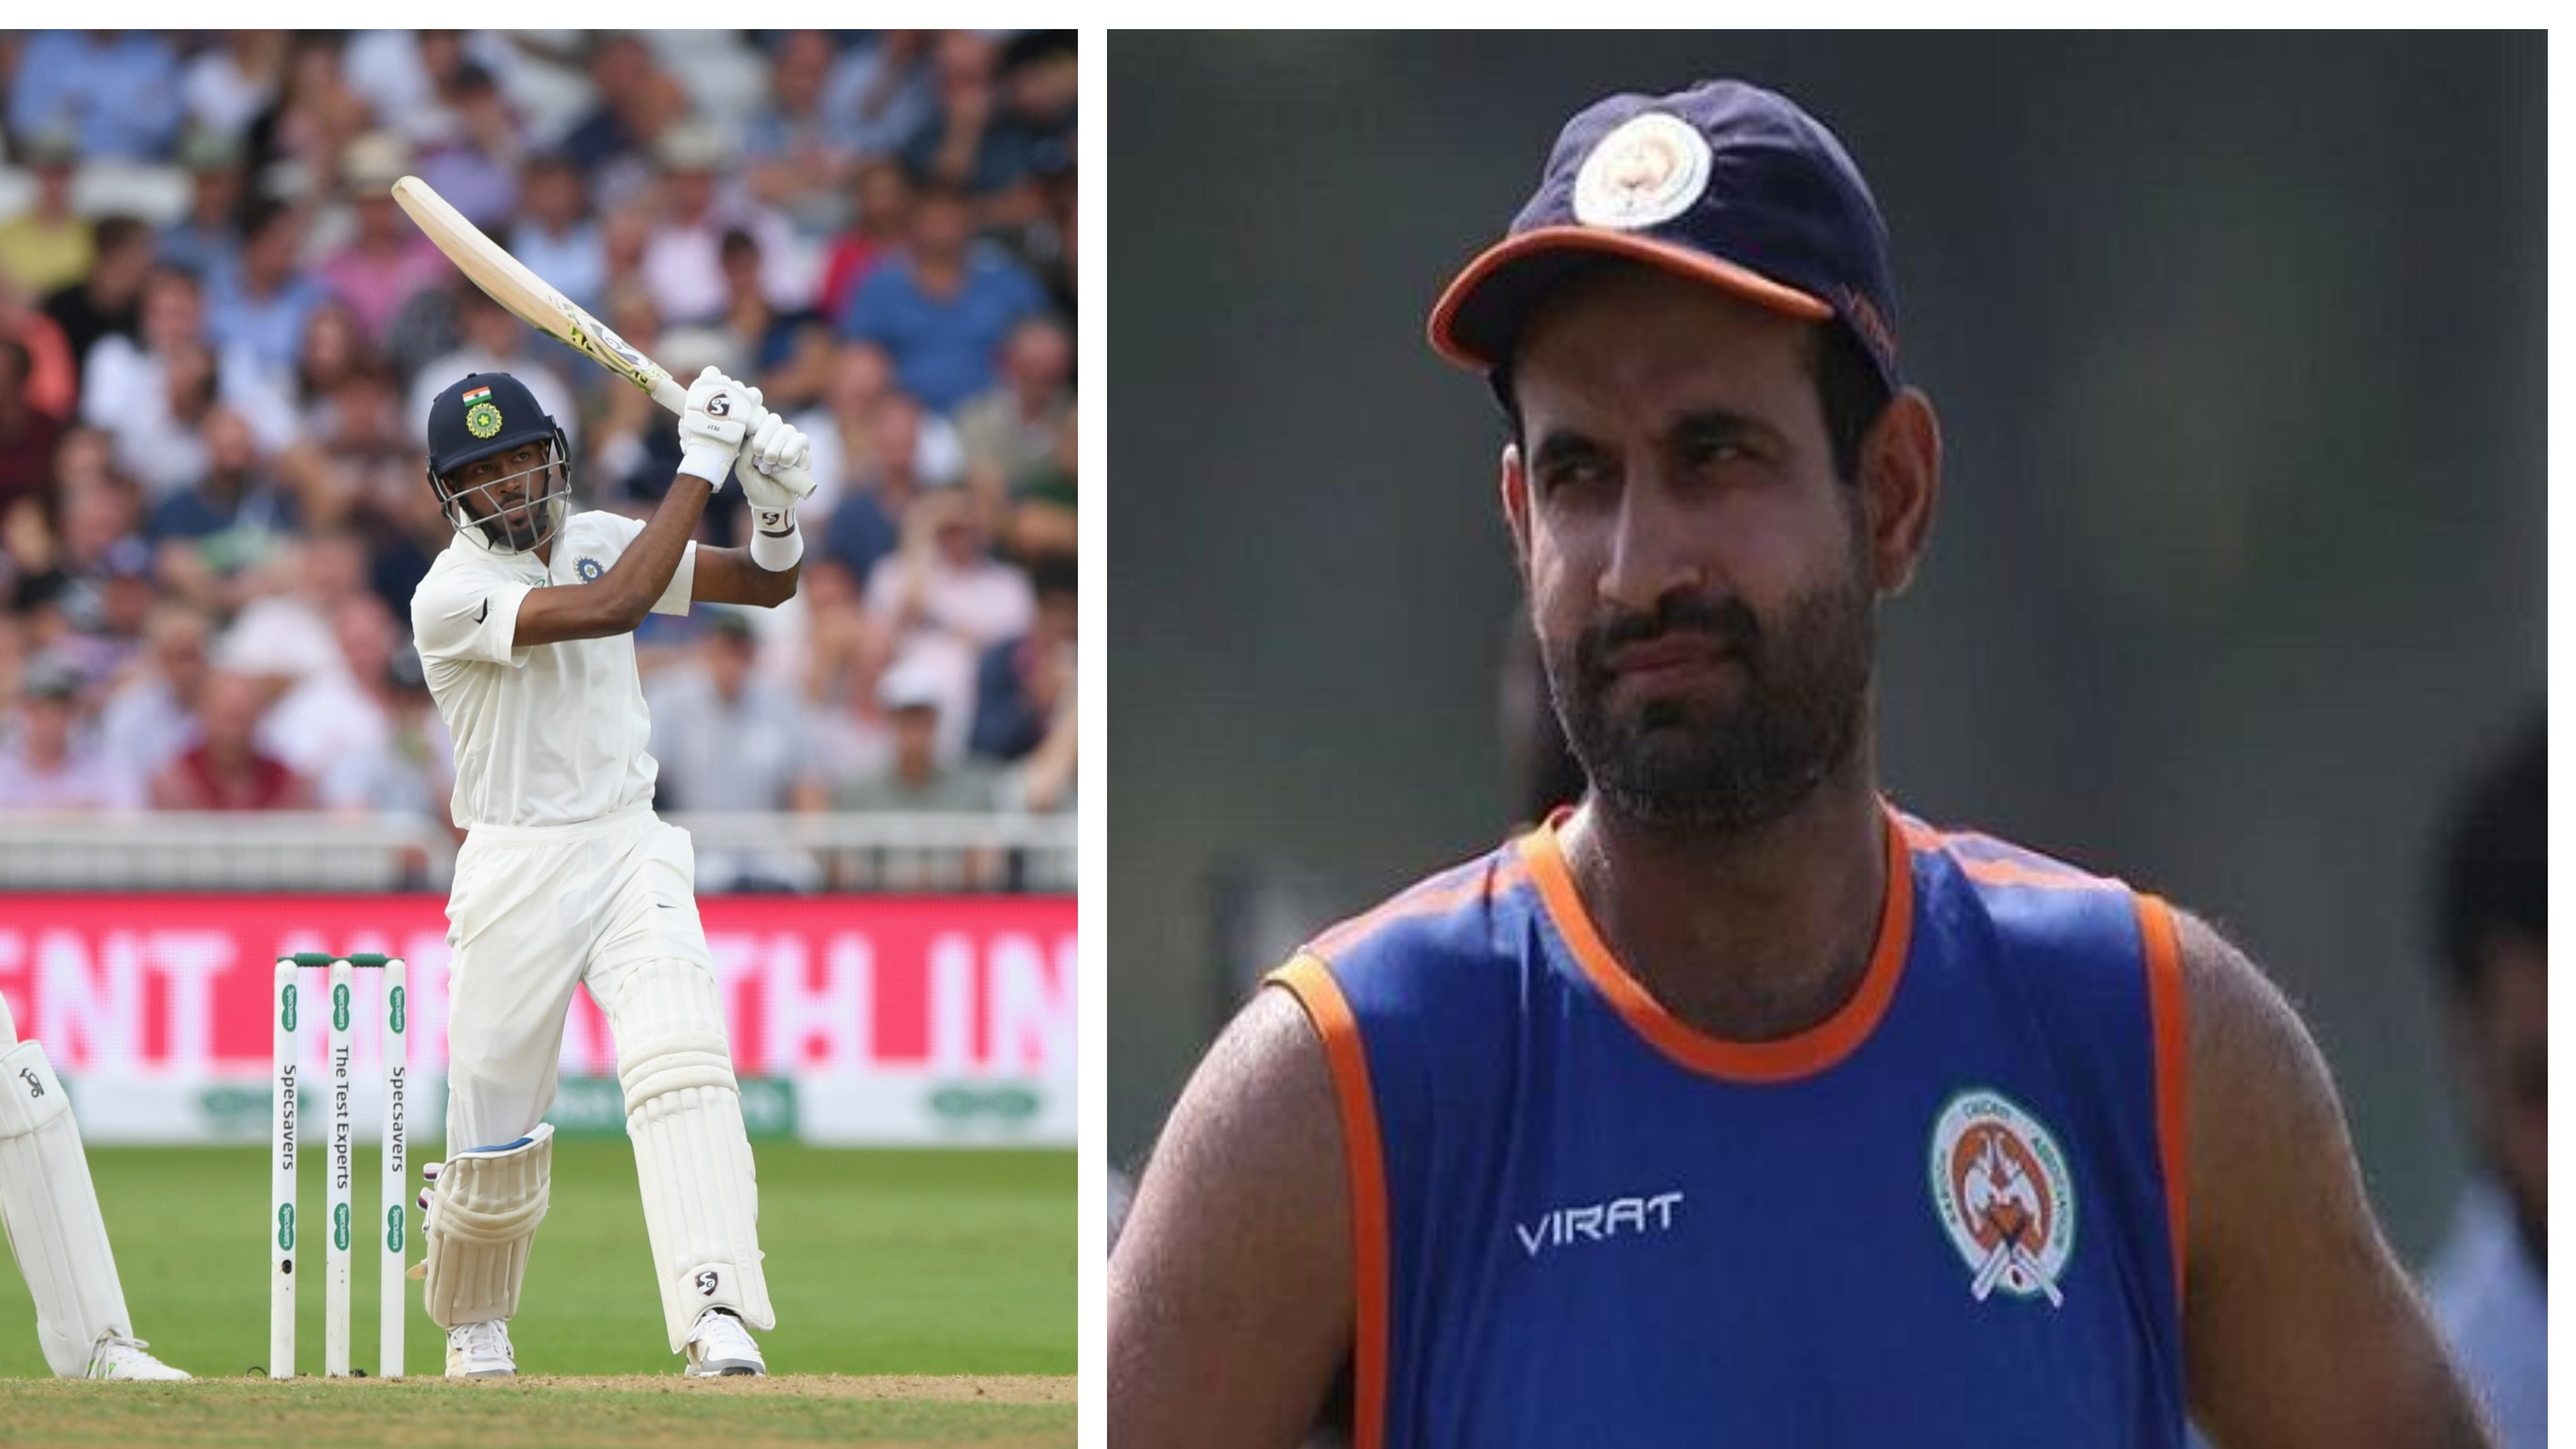 ENG vs IND 2018: Hardik Pandya should take Kapil Dev comparisons positively, advises Irfan Pathan